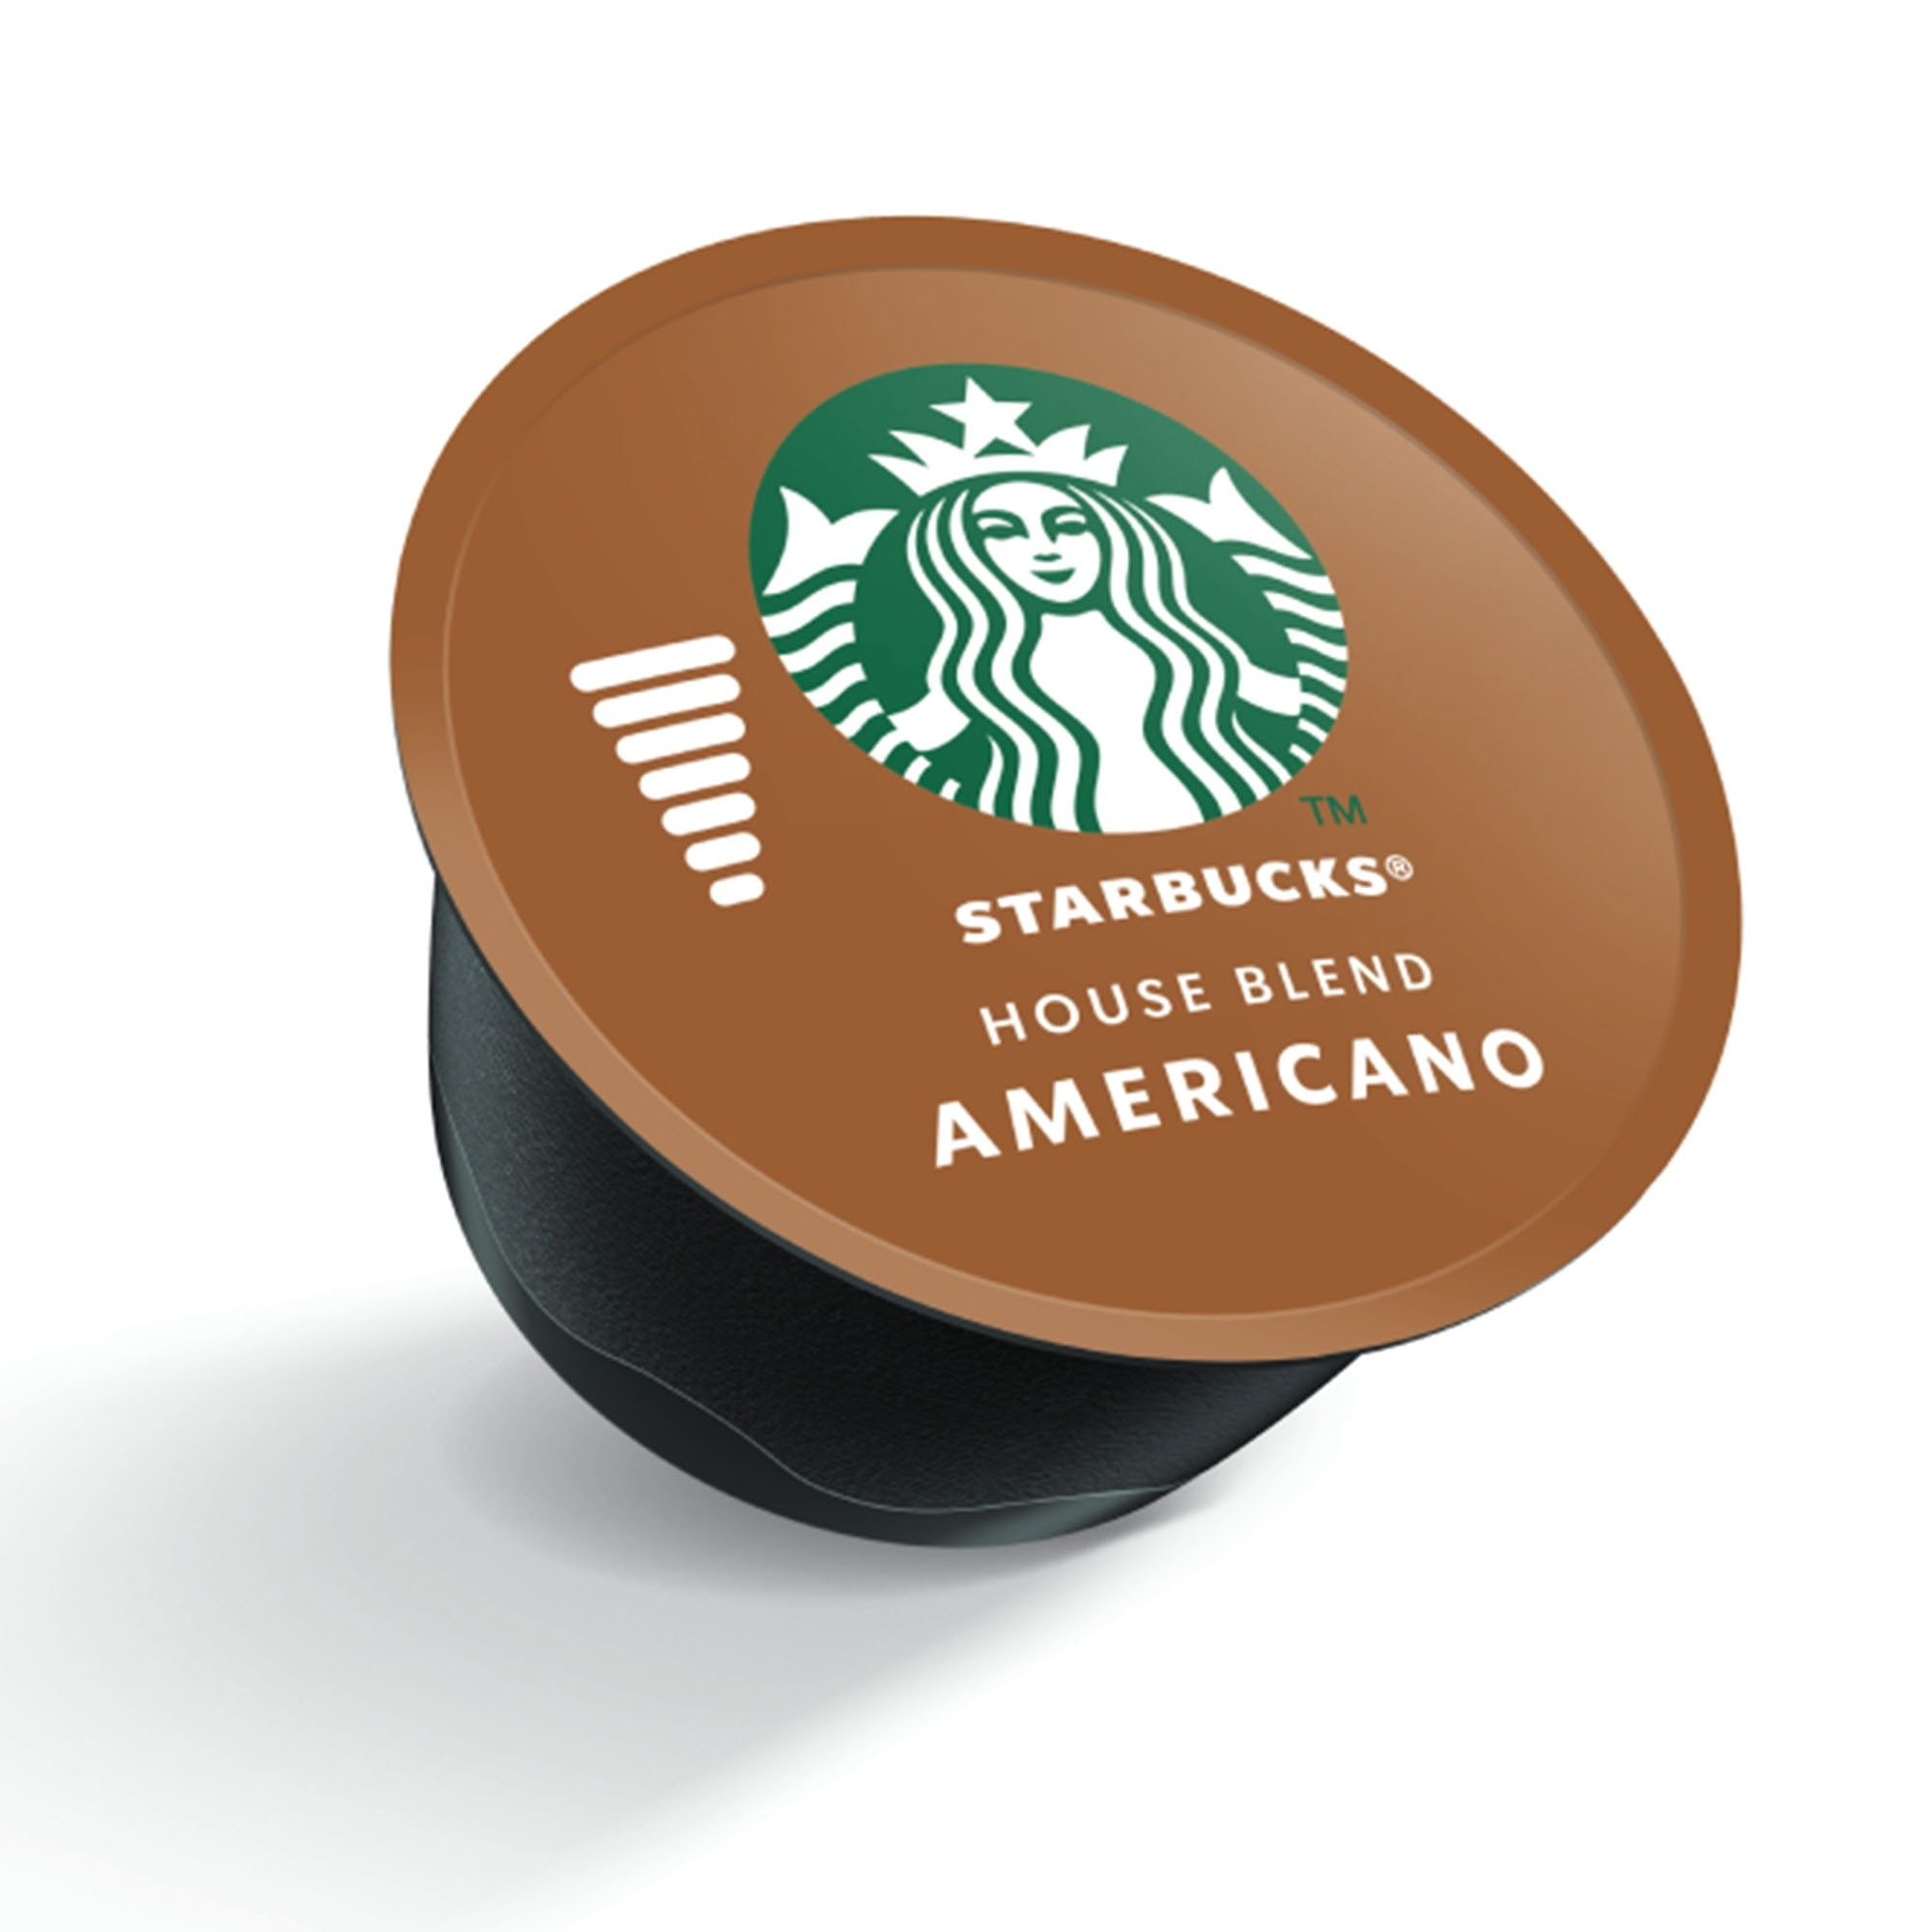 starbucks coffee capsules are available